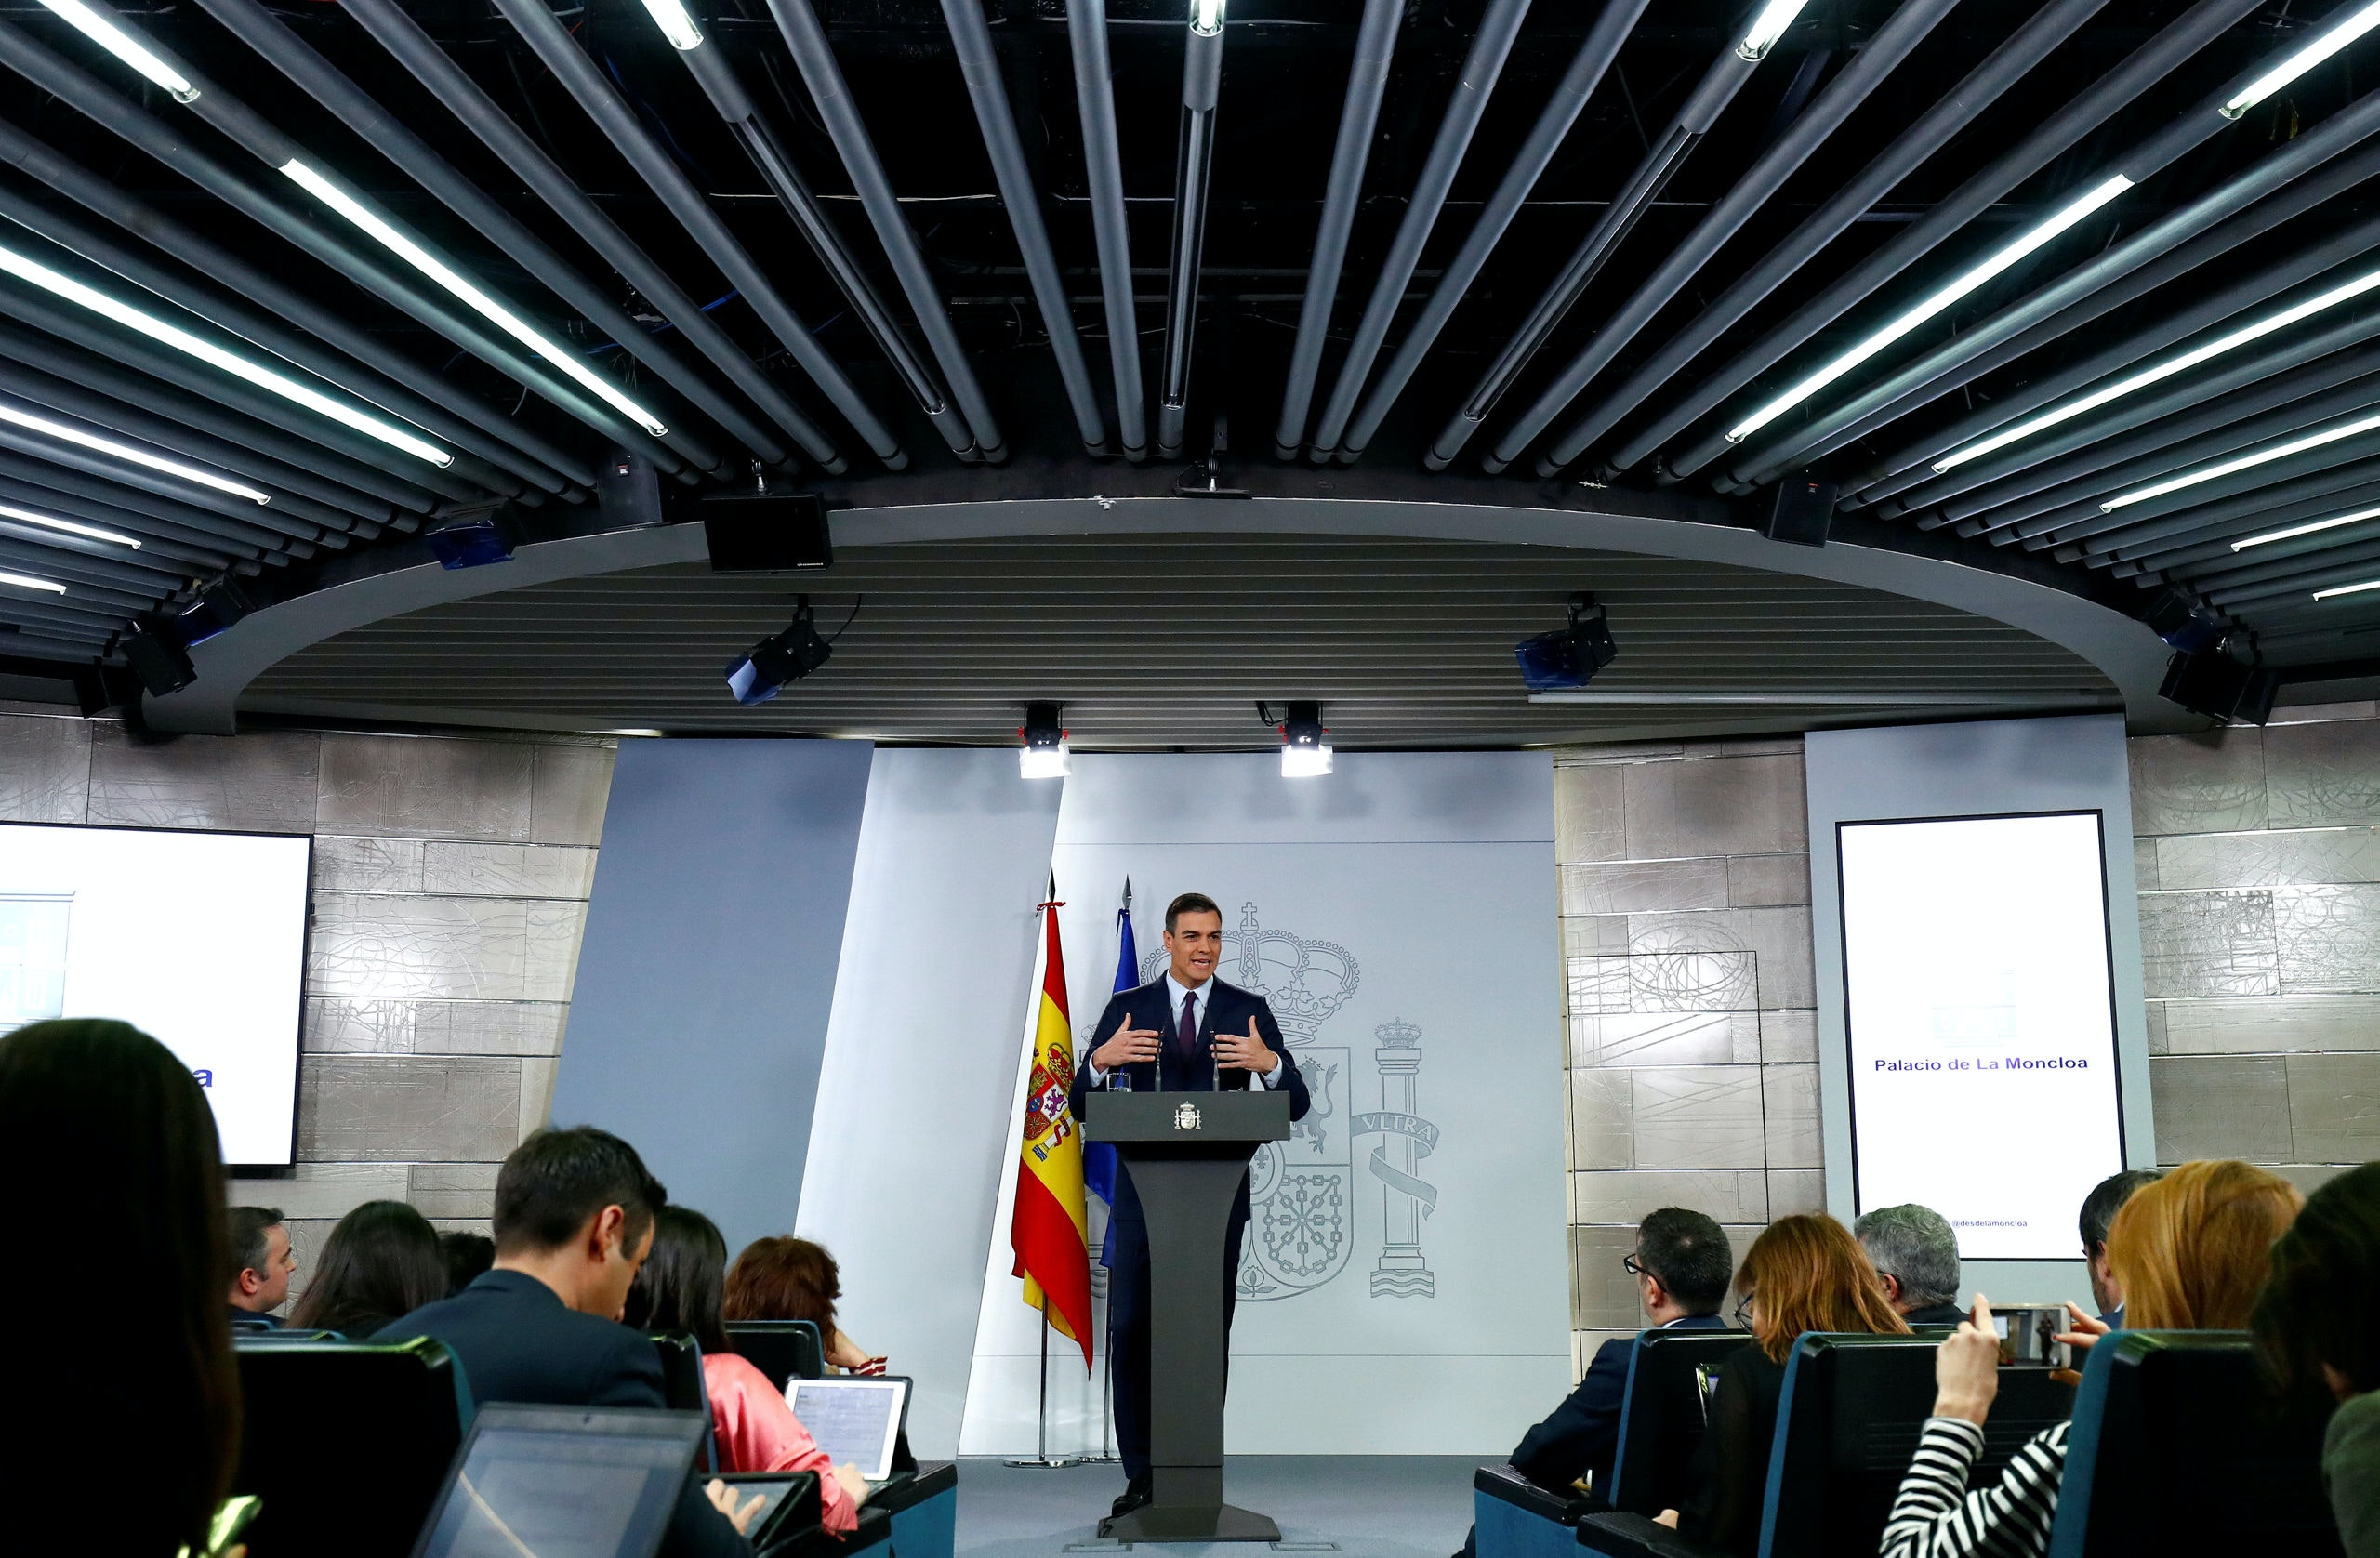 Spain's Prime Minister Pedro Sanchez holds a news conference after an extraordinary cabinet meeting in Madrid, Spain, February 15, 2019. REUTERS/Juan Medina